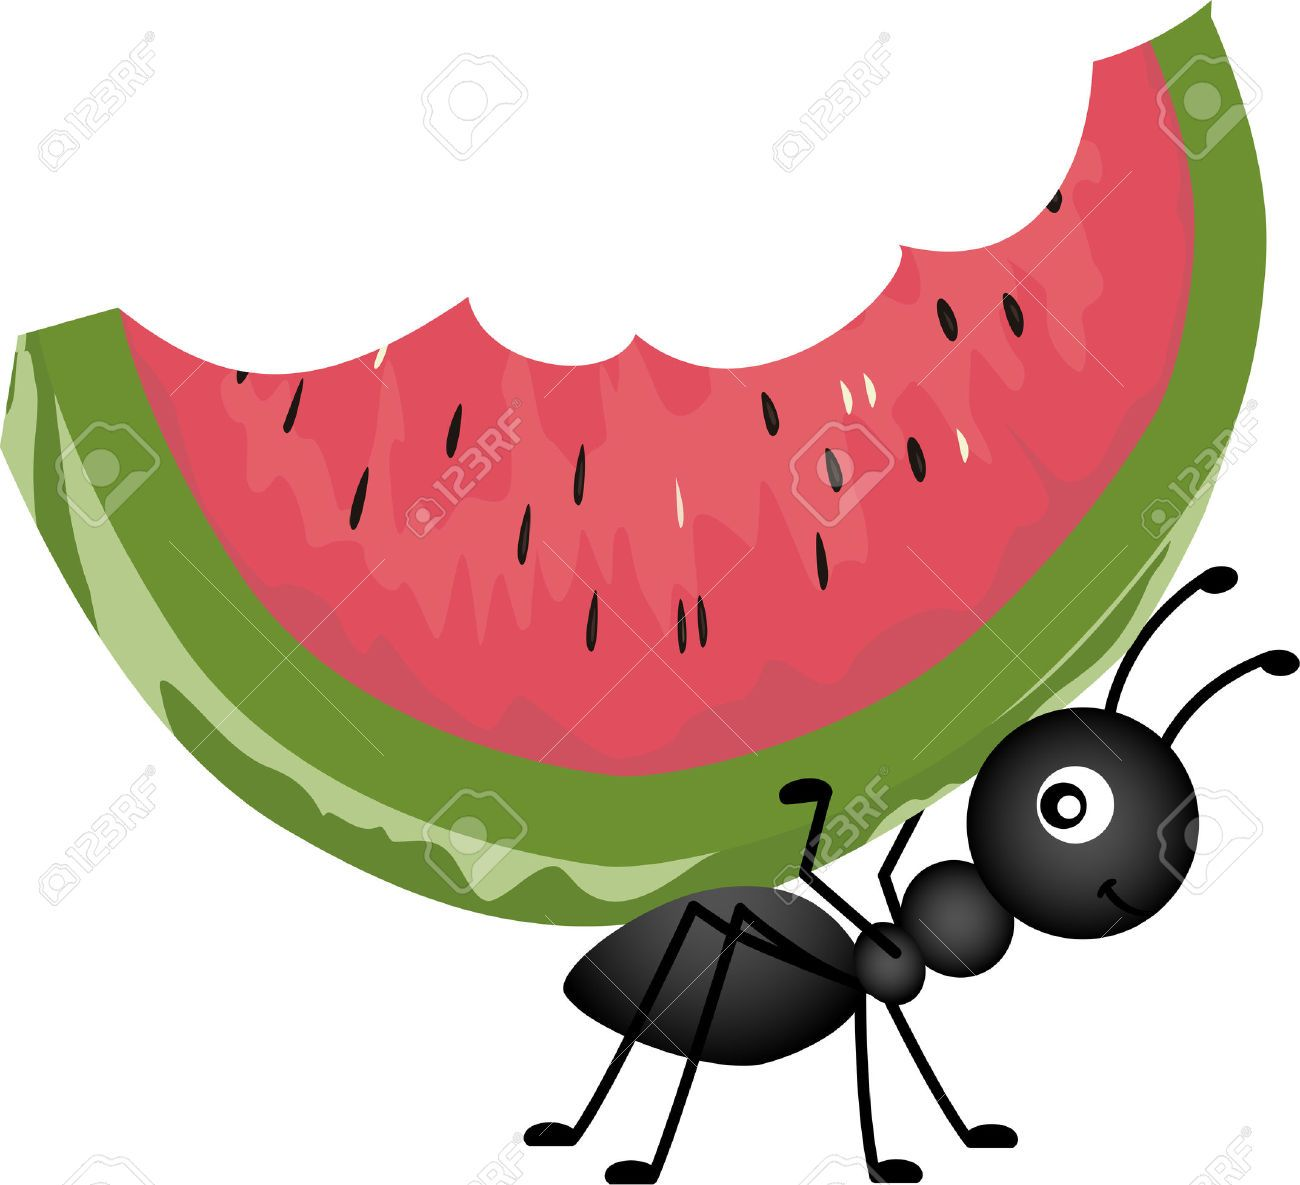 Watermelon Images Stock Pictures Royalty Free Watermelon Photos